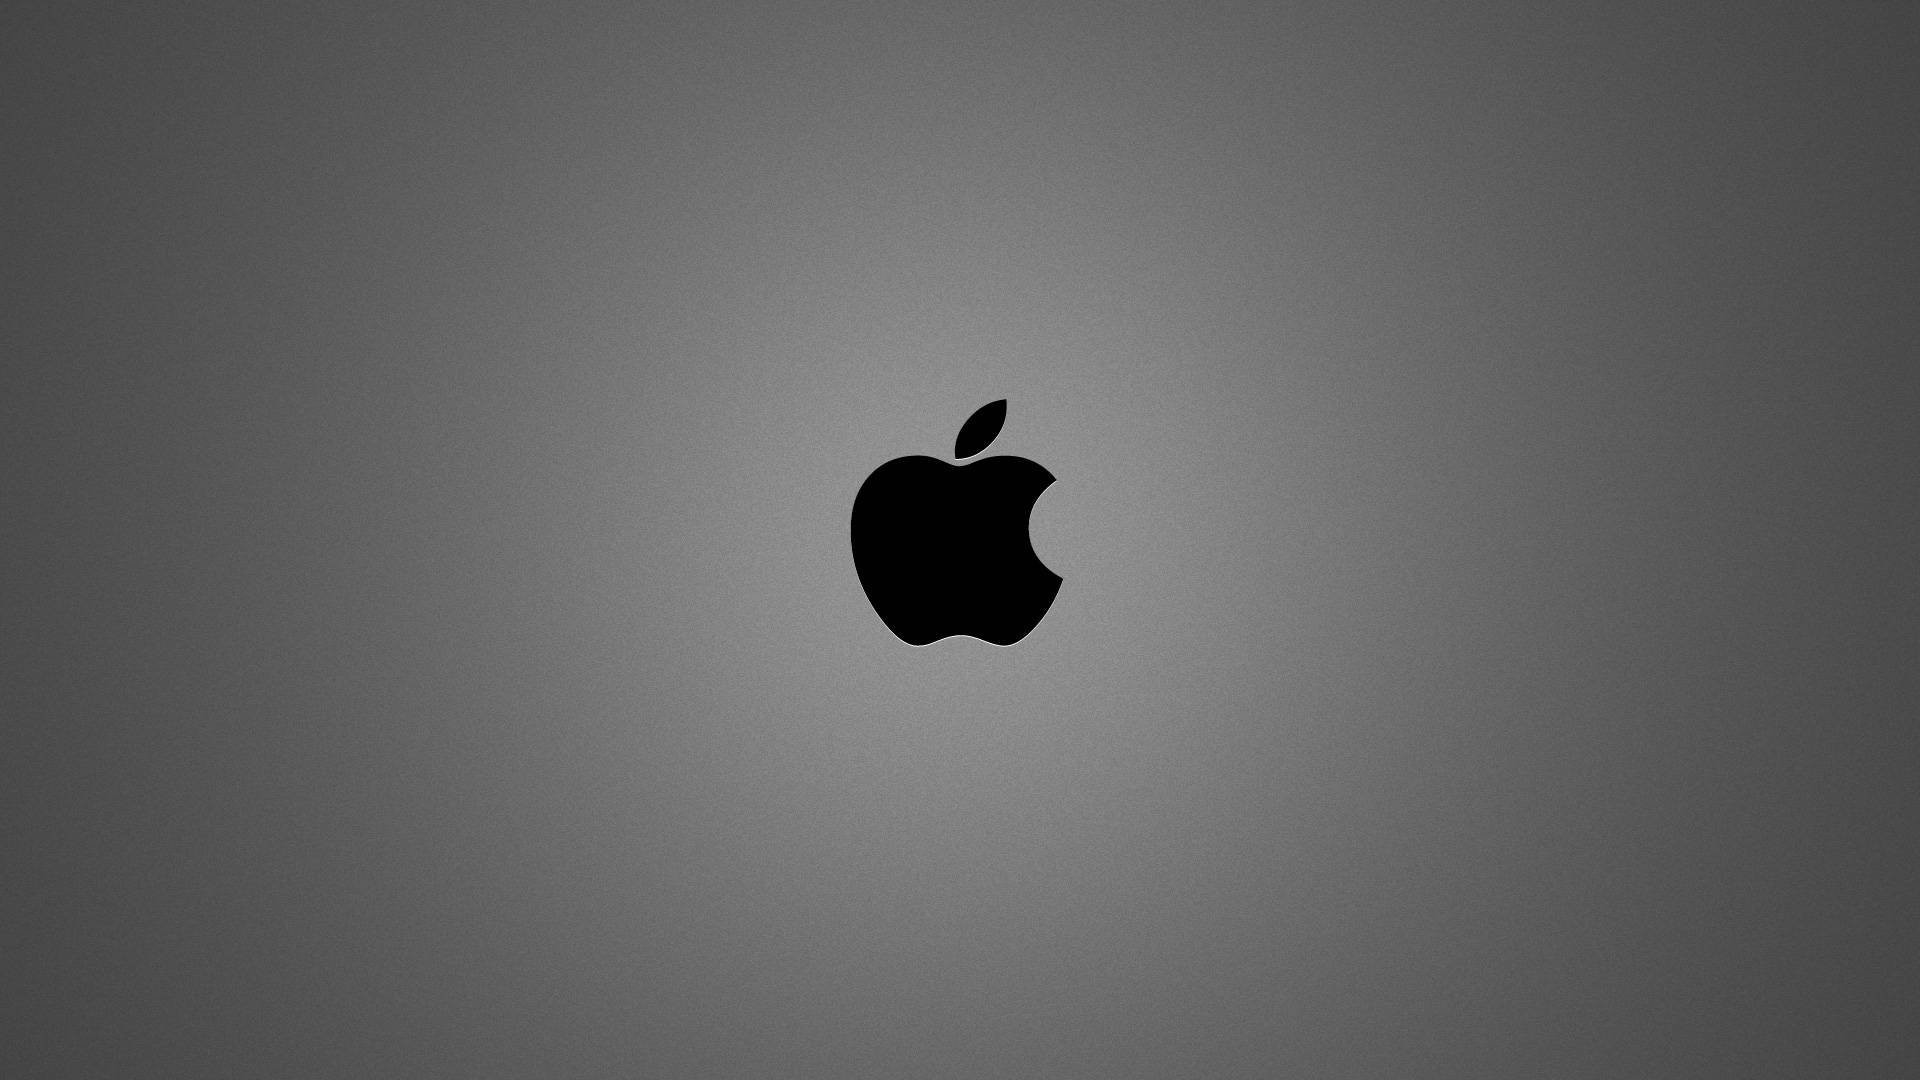 Res: 1920x1080, brushed metal apple